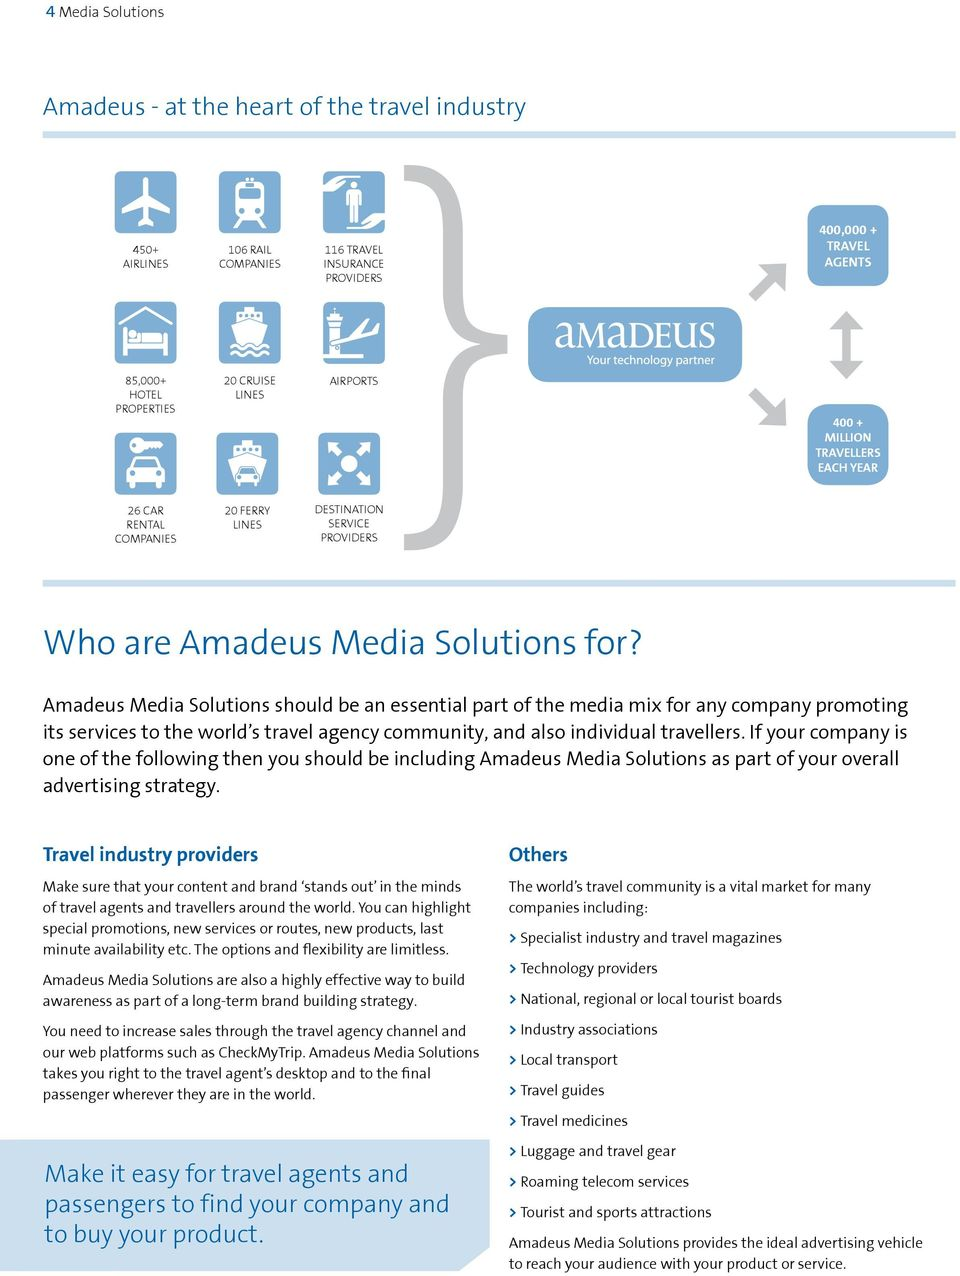 Amadeus Media Solutions should be an essential part of the media mix for any company promoting its services to the world s travel agency community, and also individual travellers.